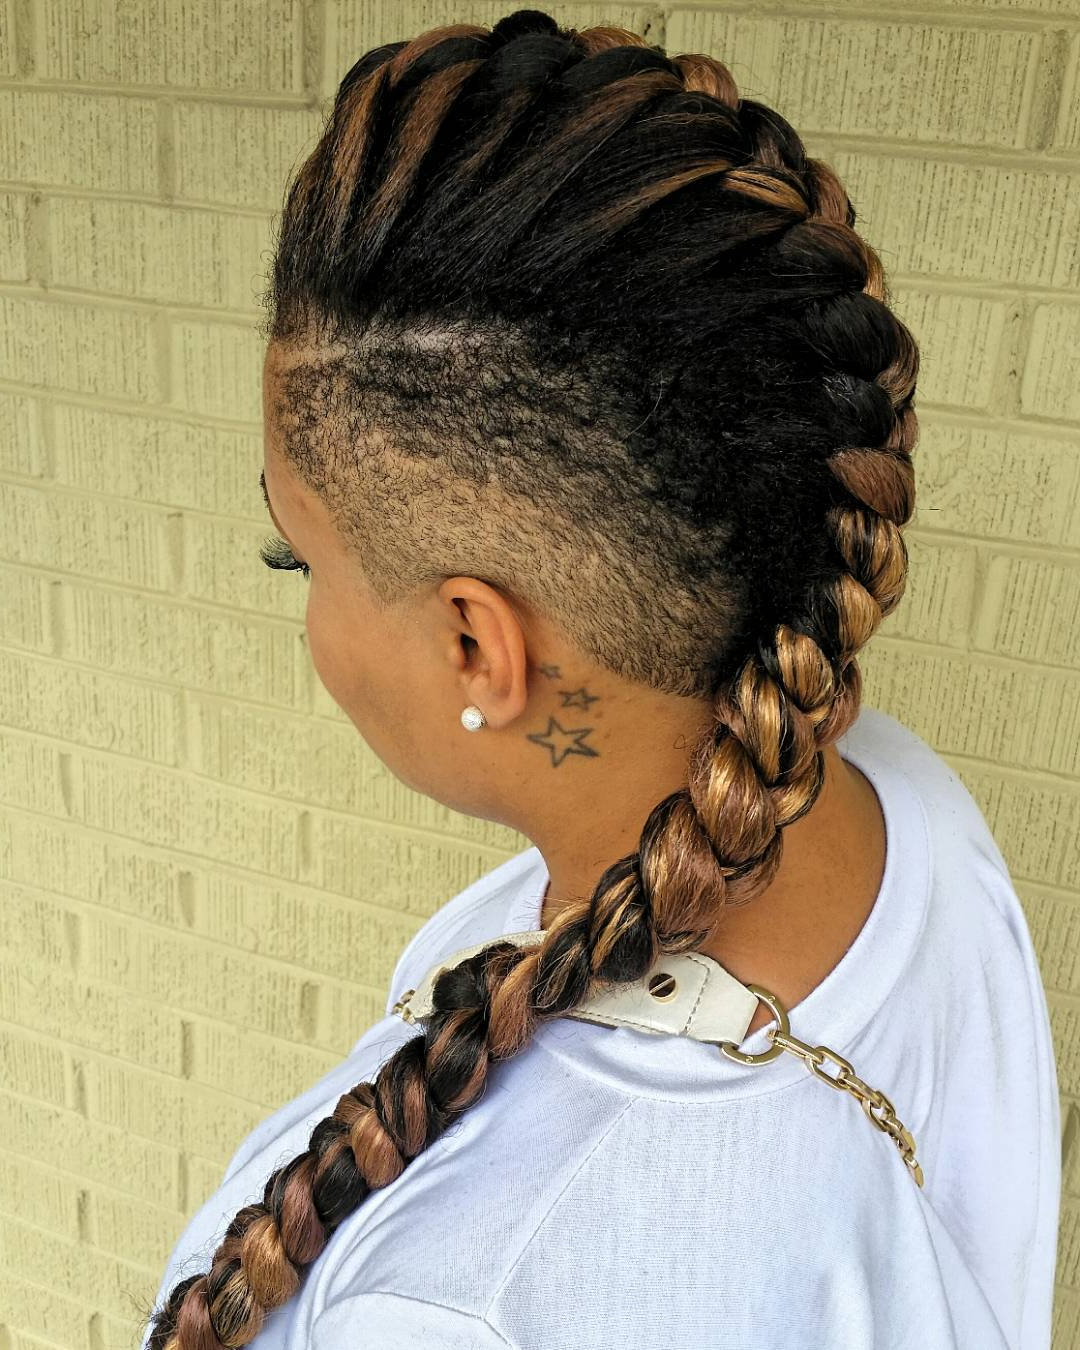 Mohawk Braids: 12 Braided Mohawk Hairstyles That Get Attention Inside Well Known Medium Length Hair Mohawk Hairstyles (View 9 of 20)